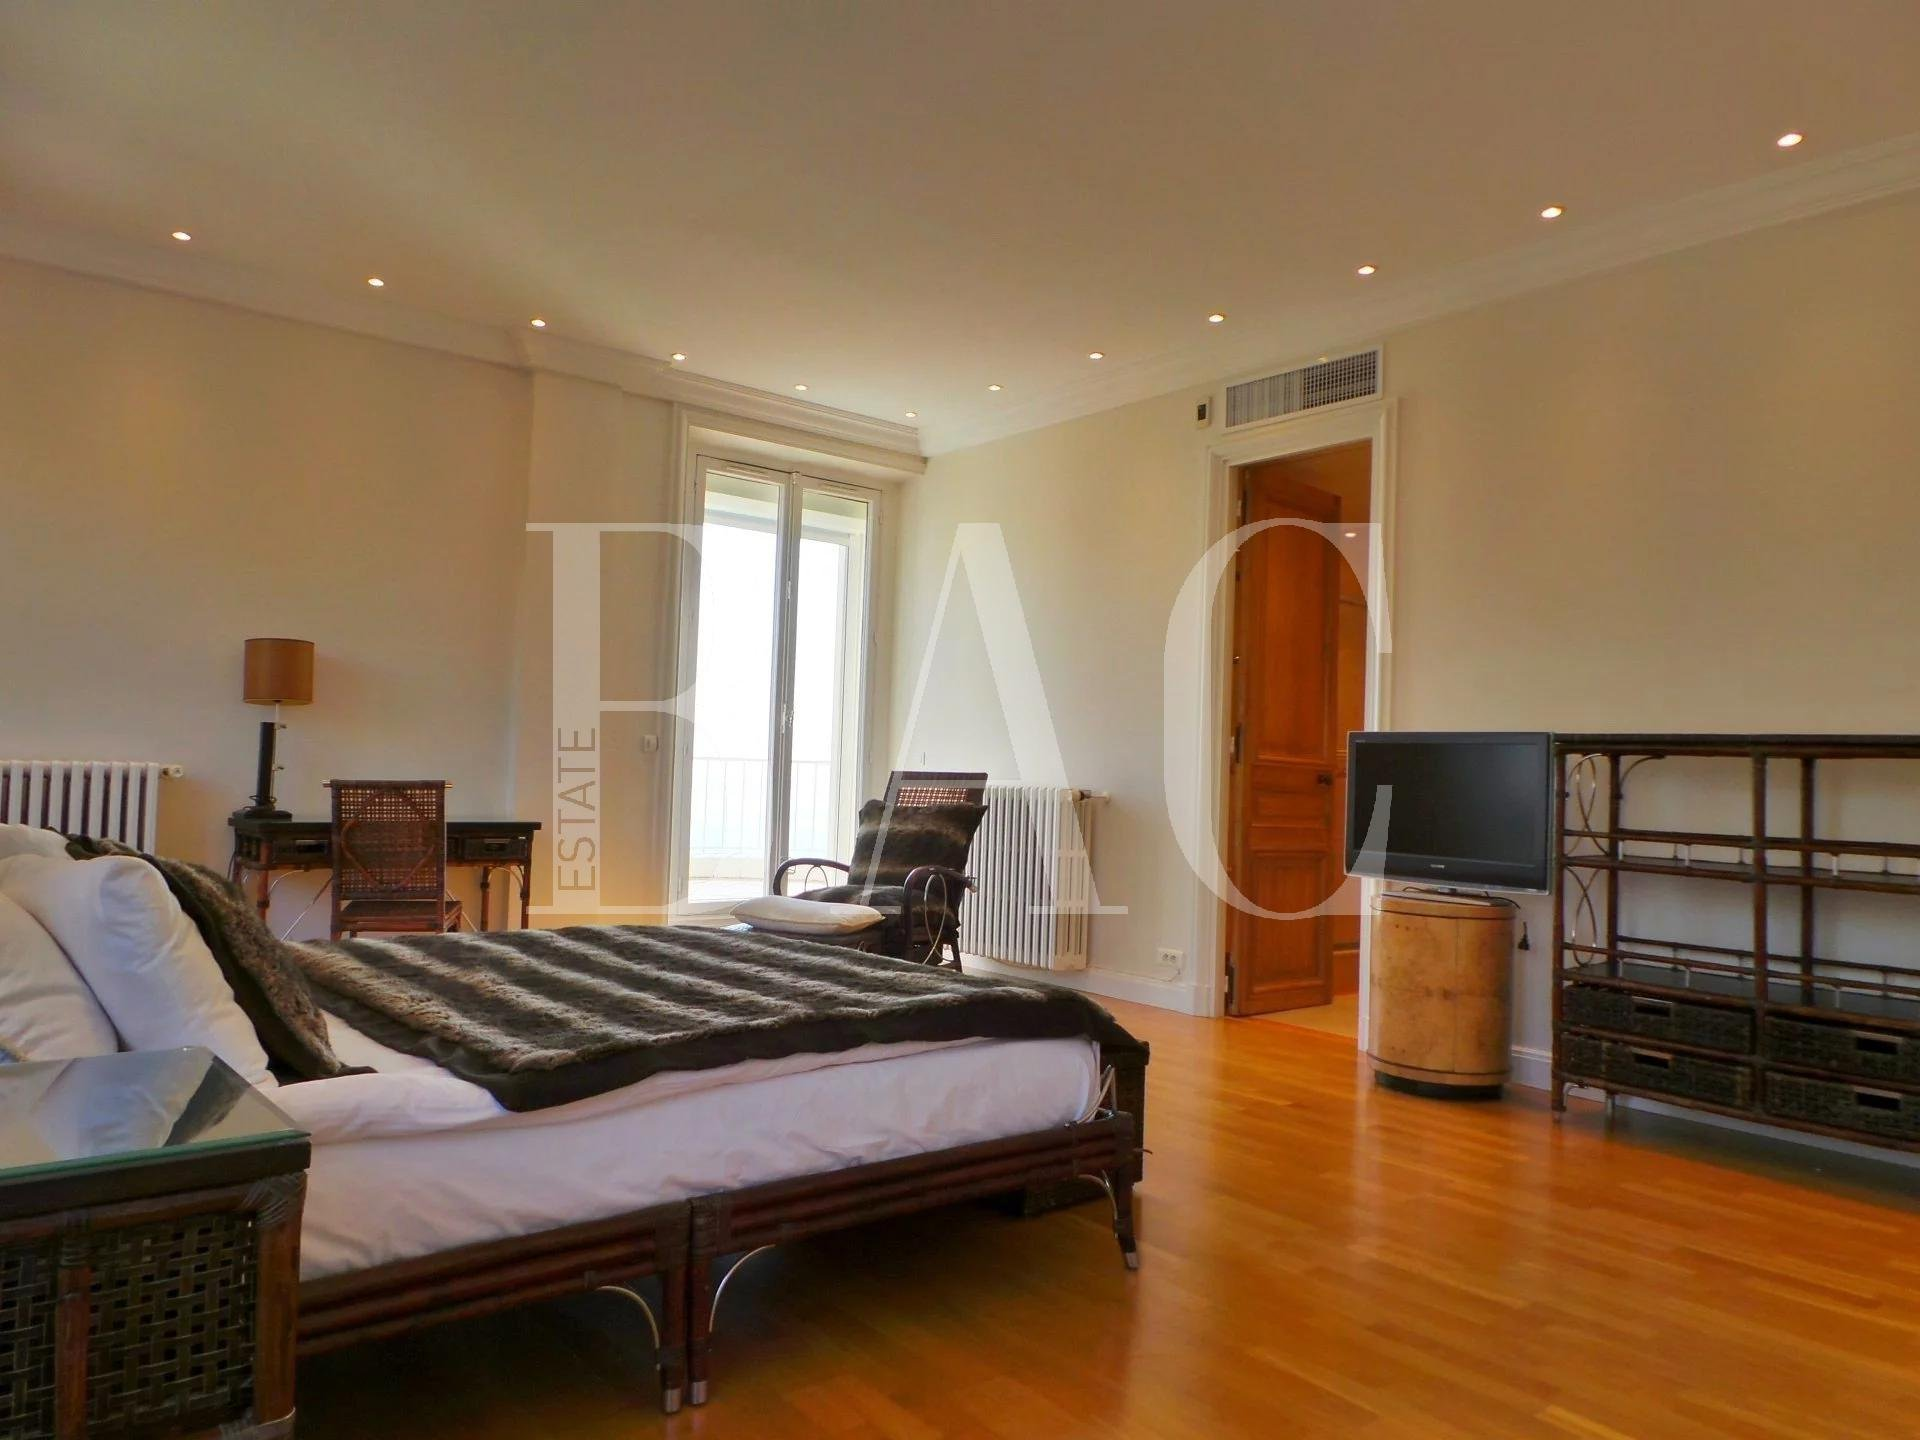 Cannes, superb apartment in a former mansion of Belle Époque style and with panoramic sea view